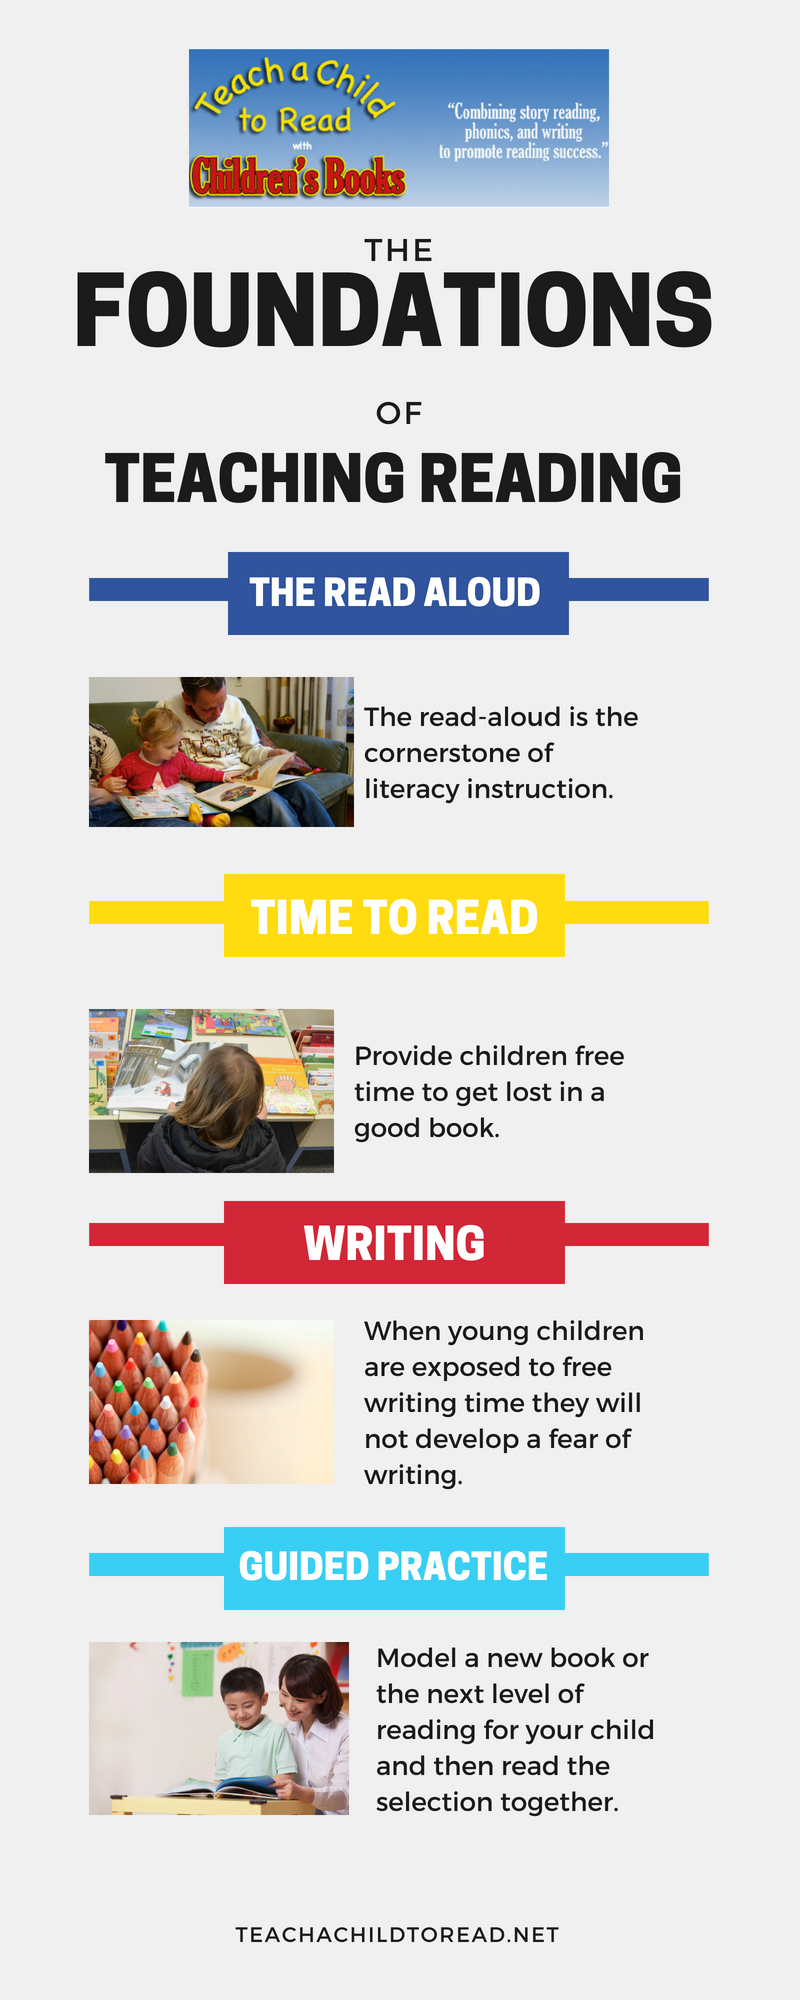 good reading habits for a foundation of reading